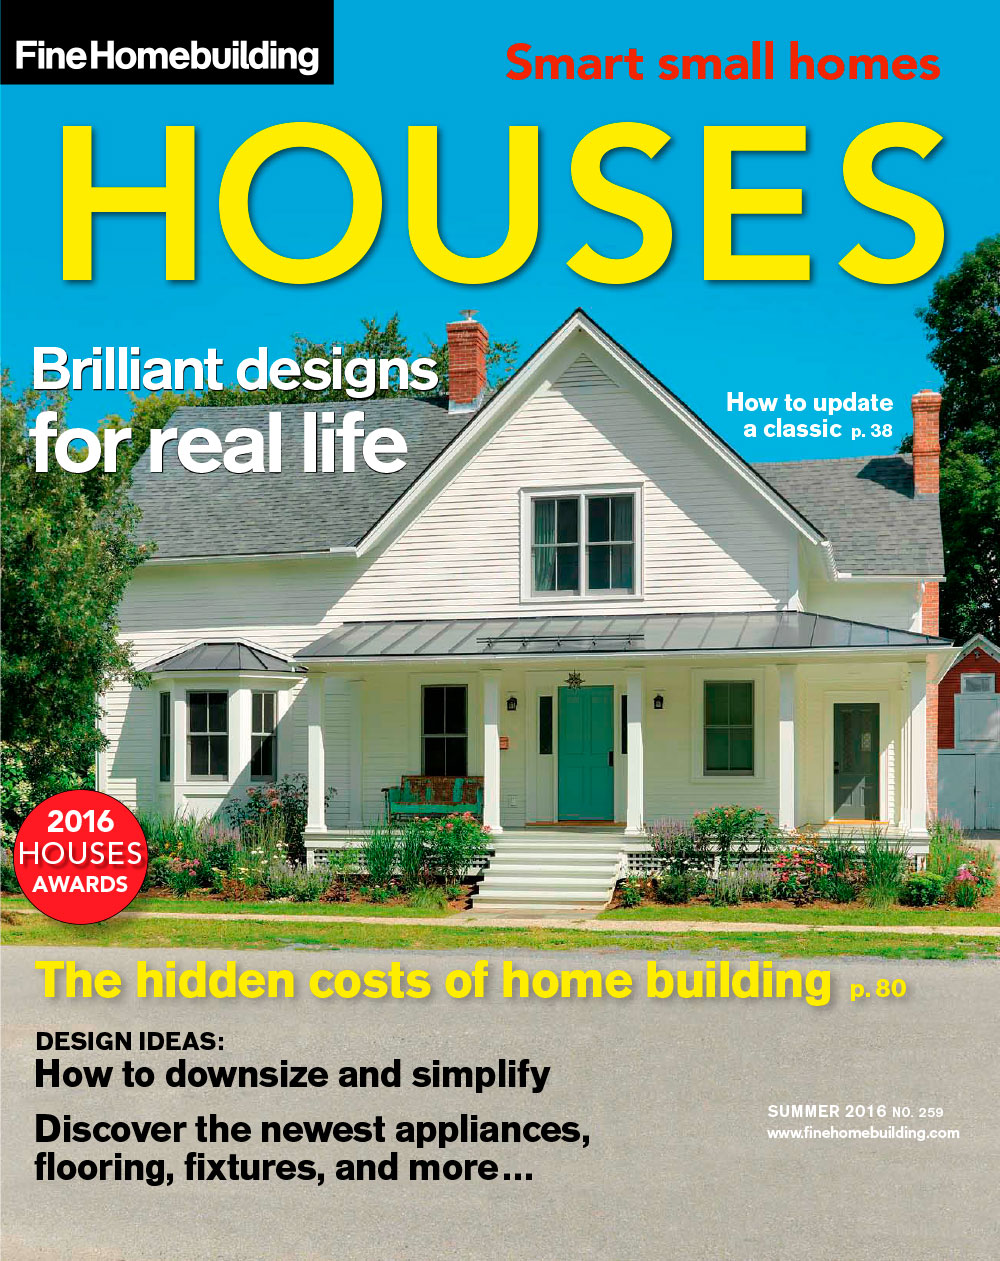 Issue 259 houses 2016 fine homebuilding for Fine home building